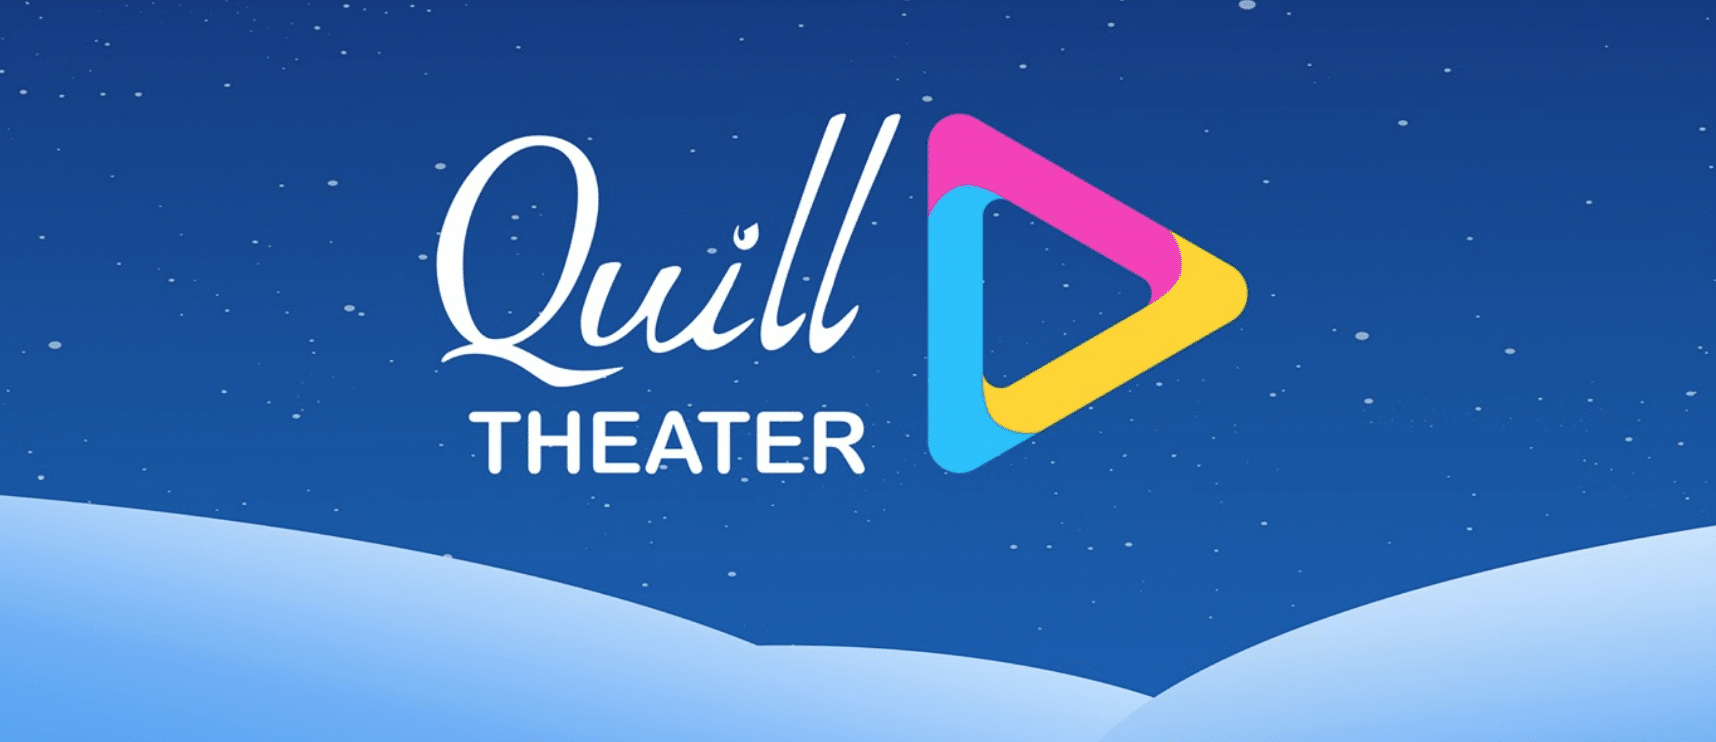 quill-theater